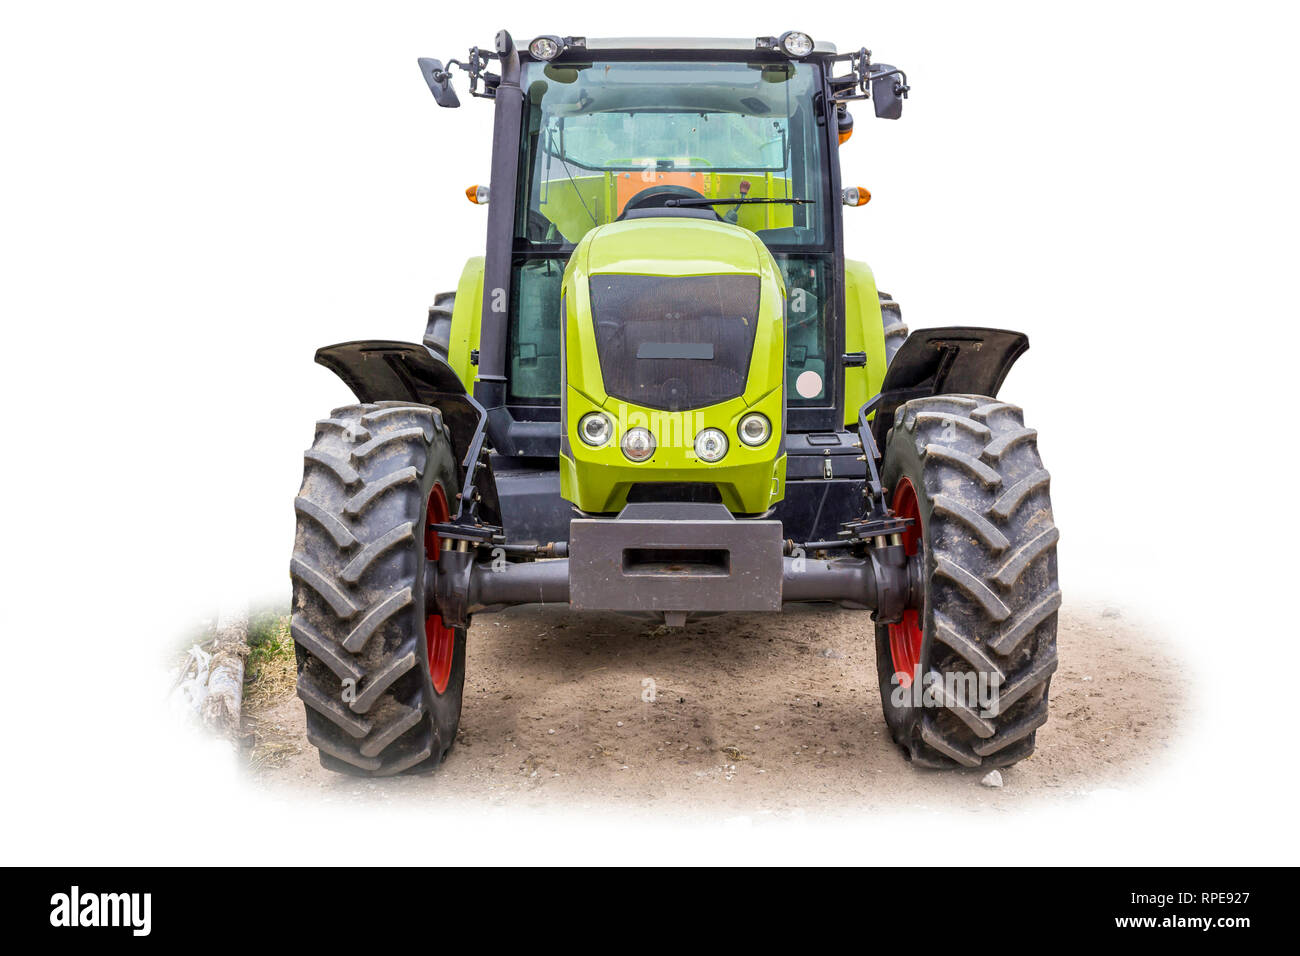 Powerful tractor for various agricultural work. Front view of an agricultural machine. Necessary equipment for a dairy farm. The isolated image. - Stock Image